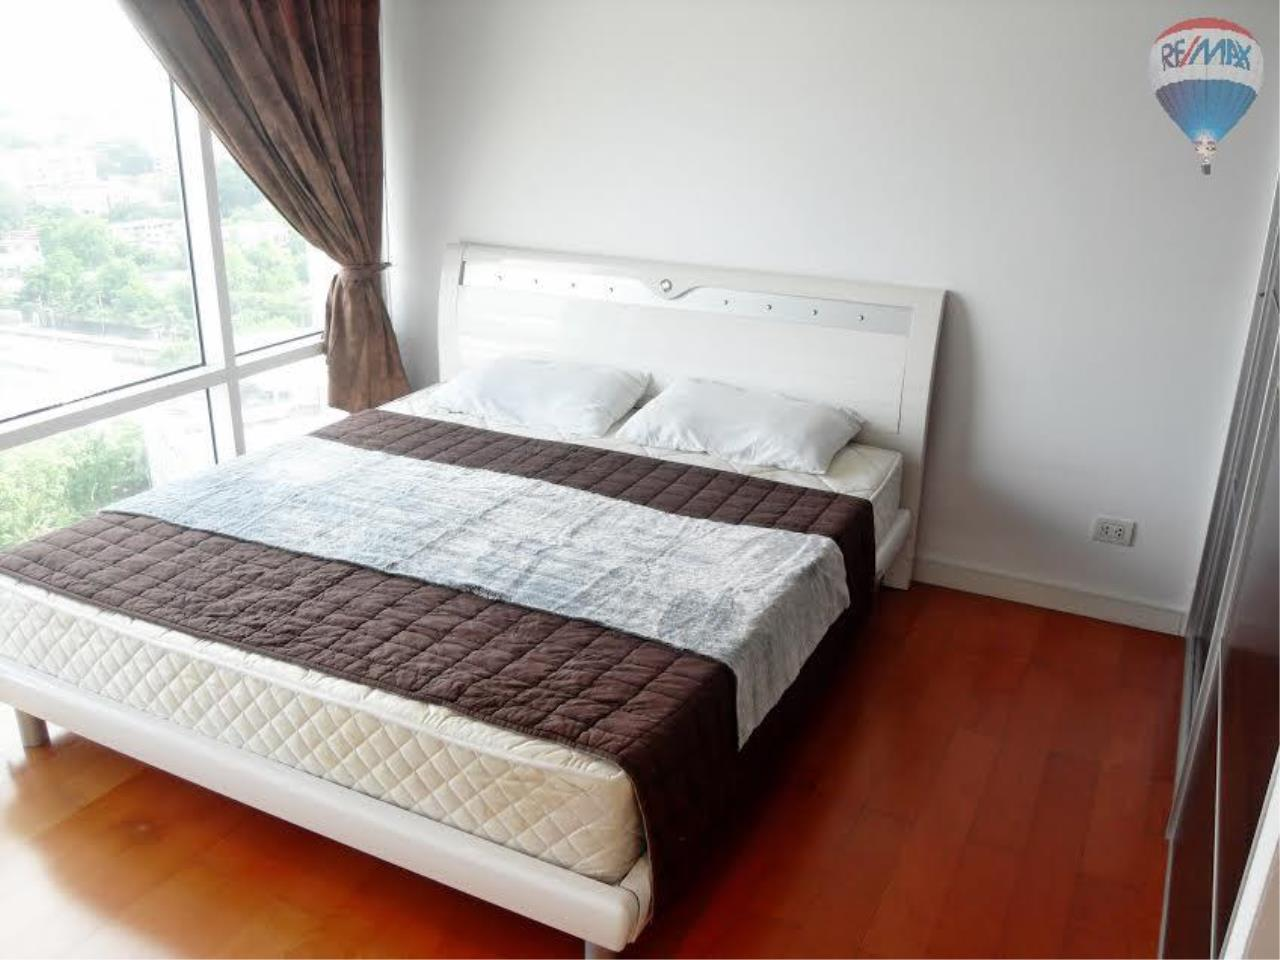 RE/MAX Properties Agency's For rent - 3 Bedroom Apartment 7